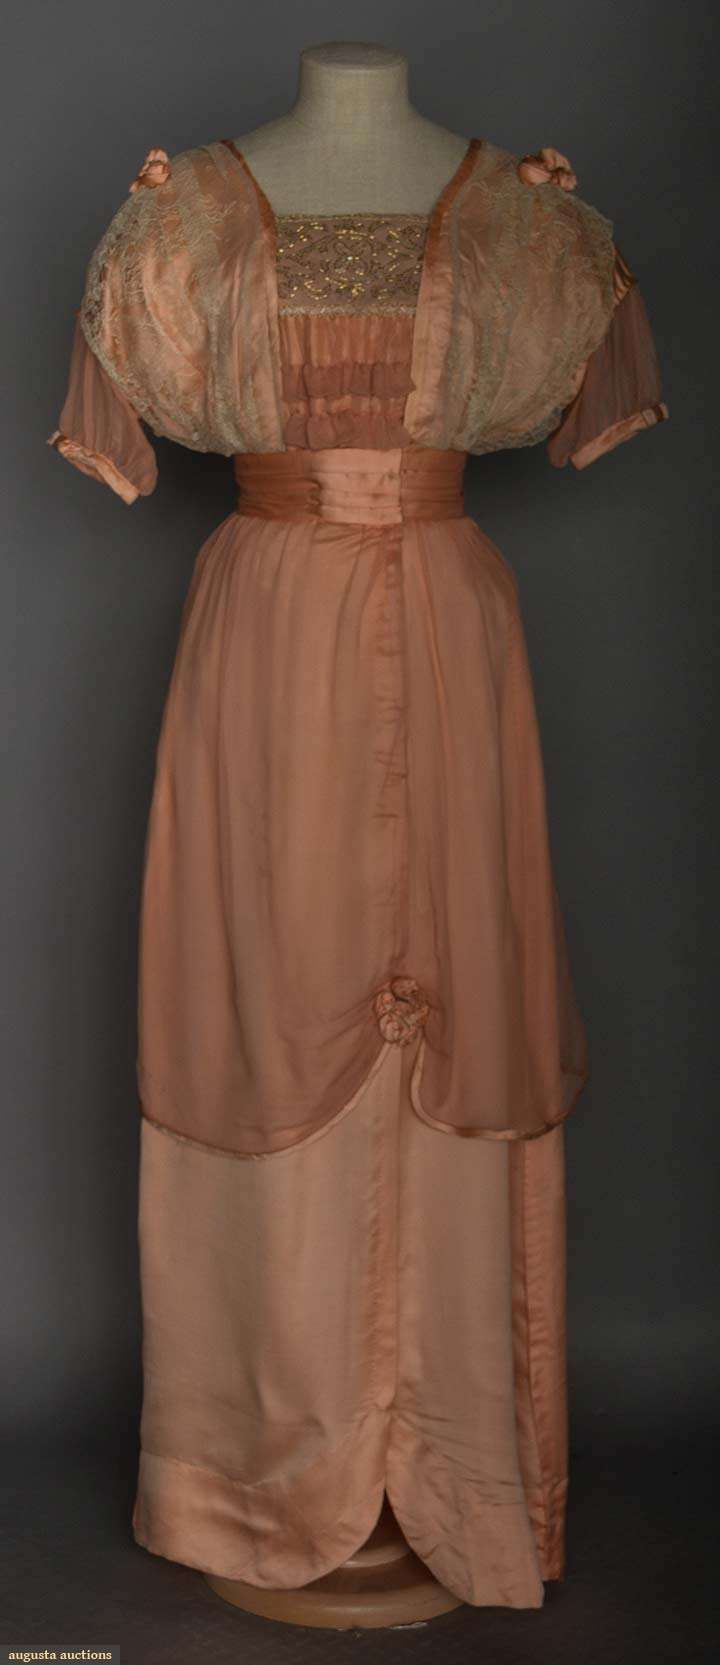 Pink Silk Ball Gown, C. 1912, Augusta Auctions, November 11, 2015 NYC